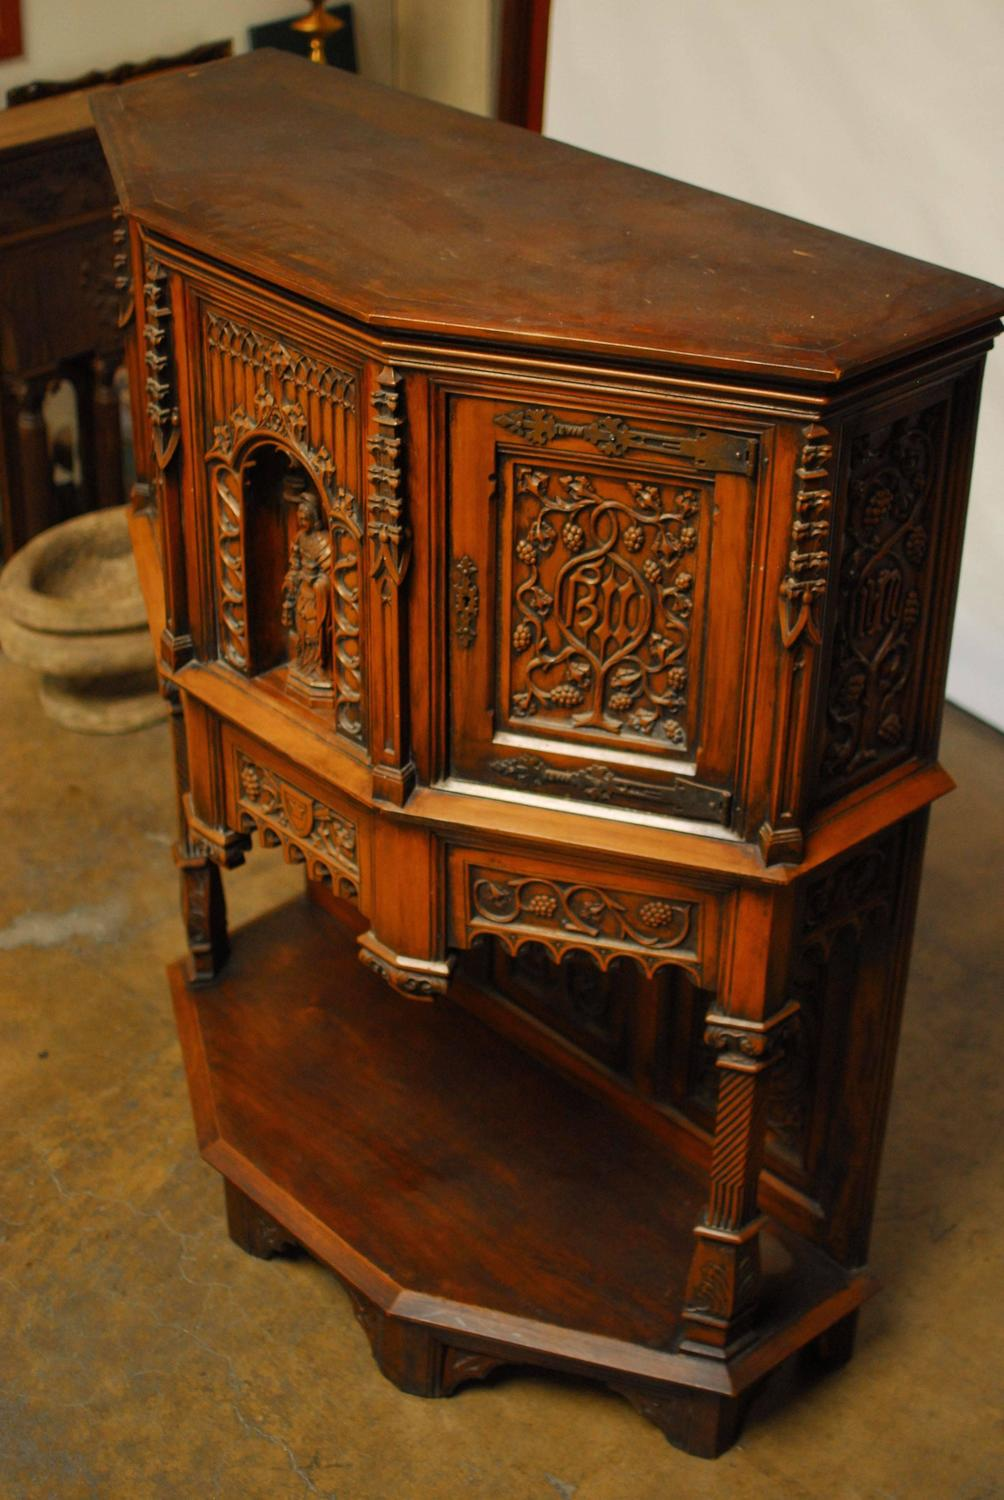 19th Century Belgian Grand Gothic Dressoir Cabinet At 1stdibs